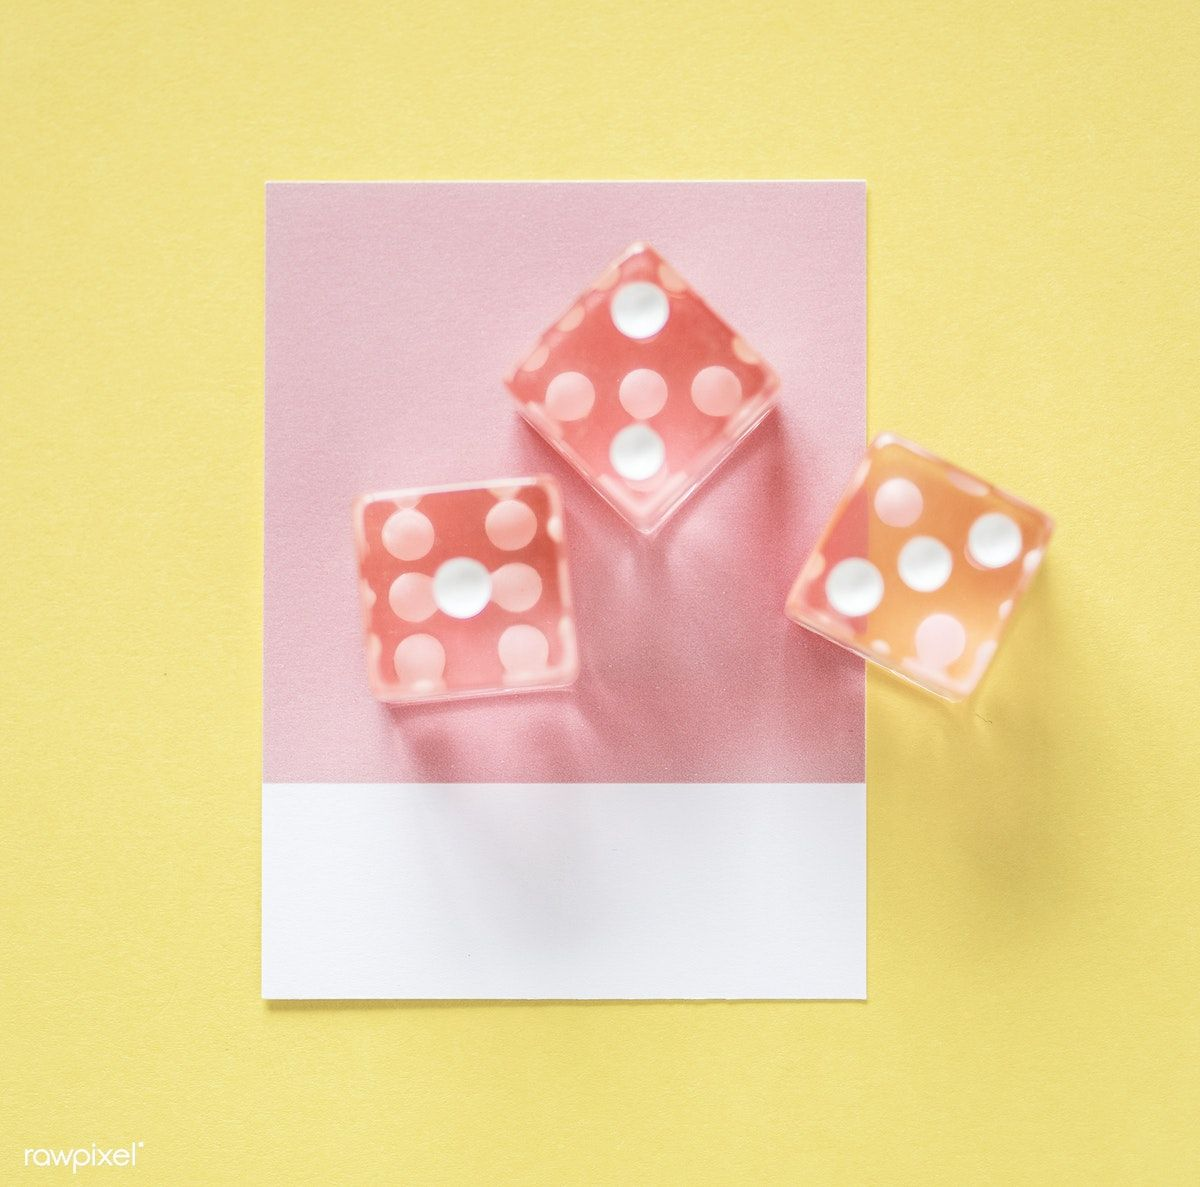 Closeup of dice on a small paper free image by rawpixel